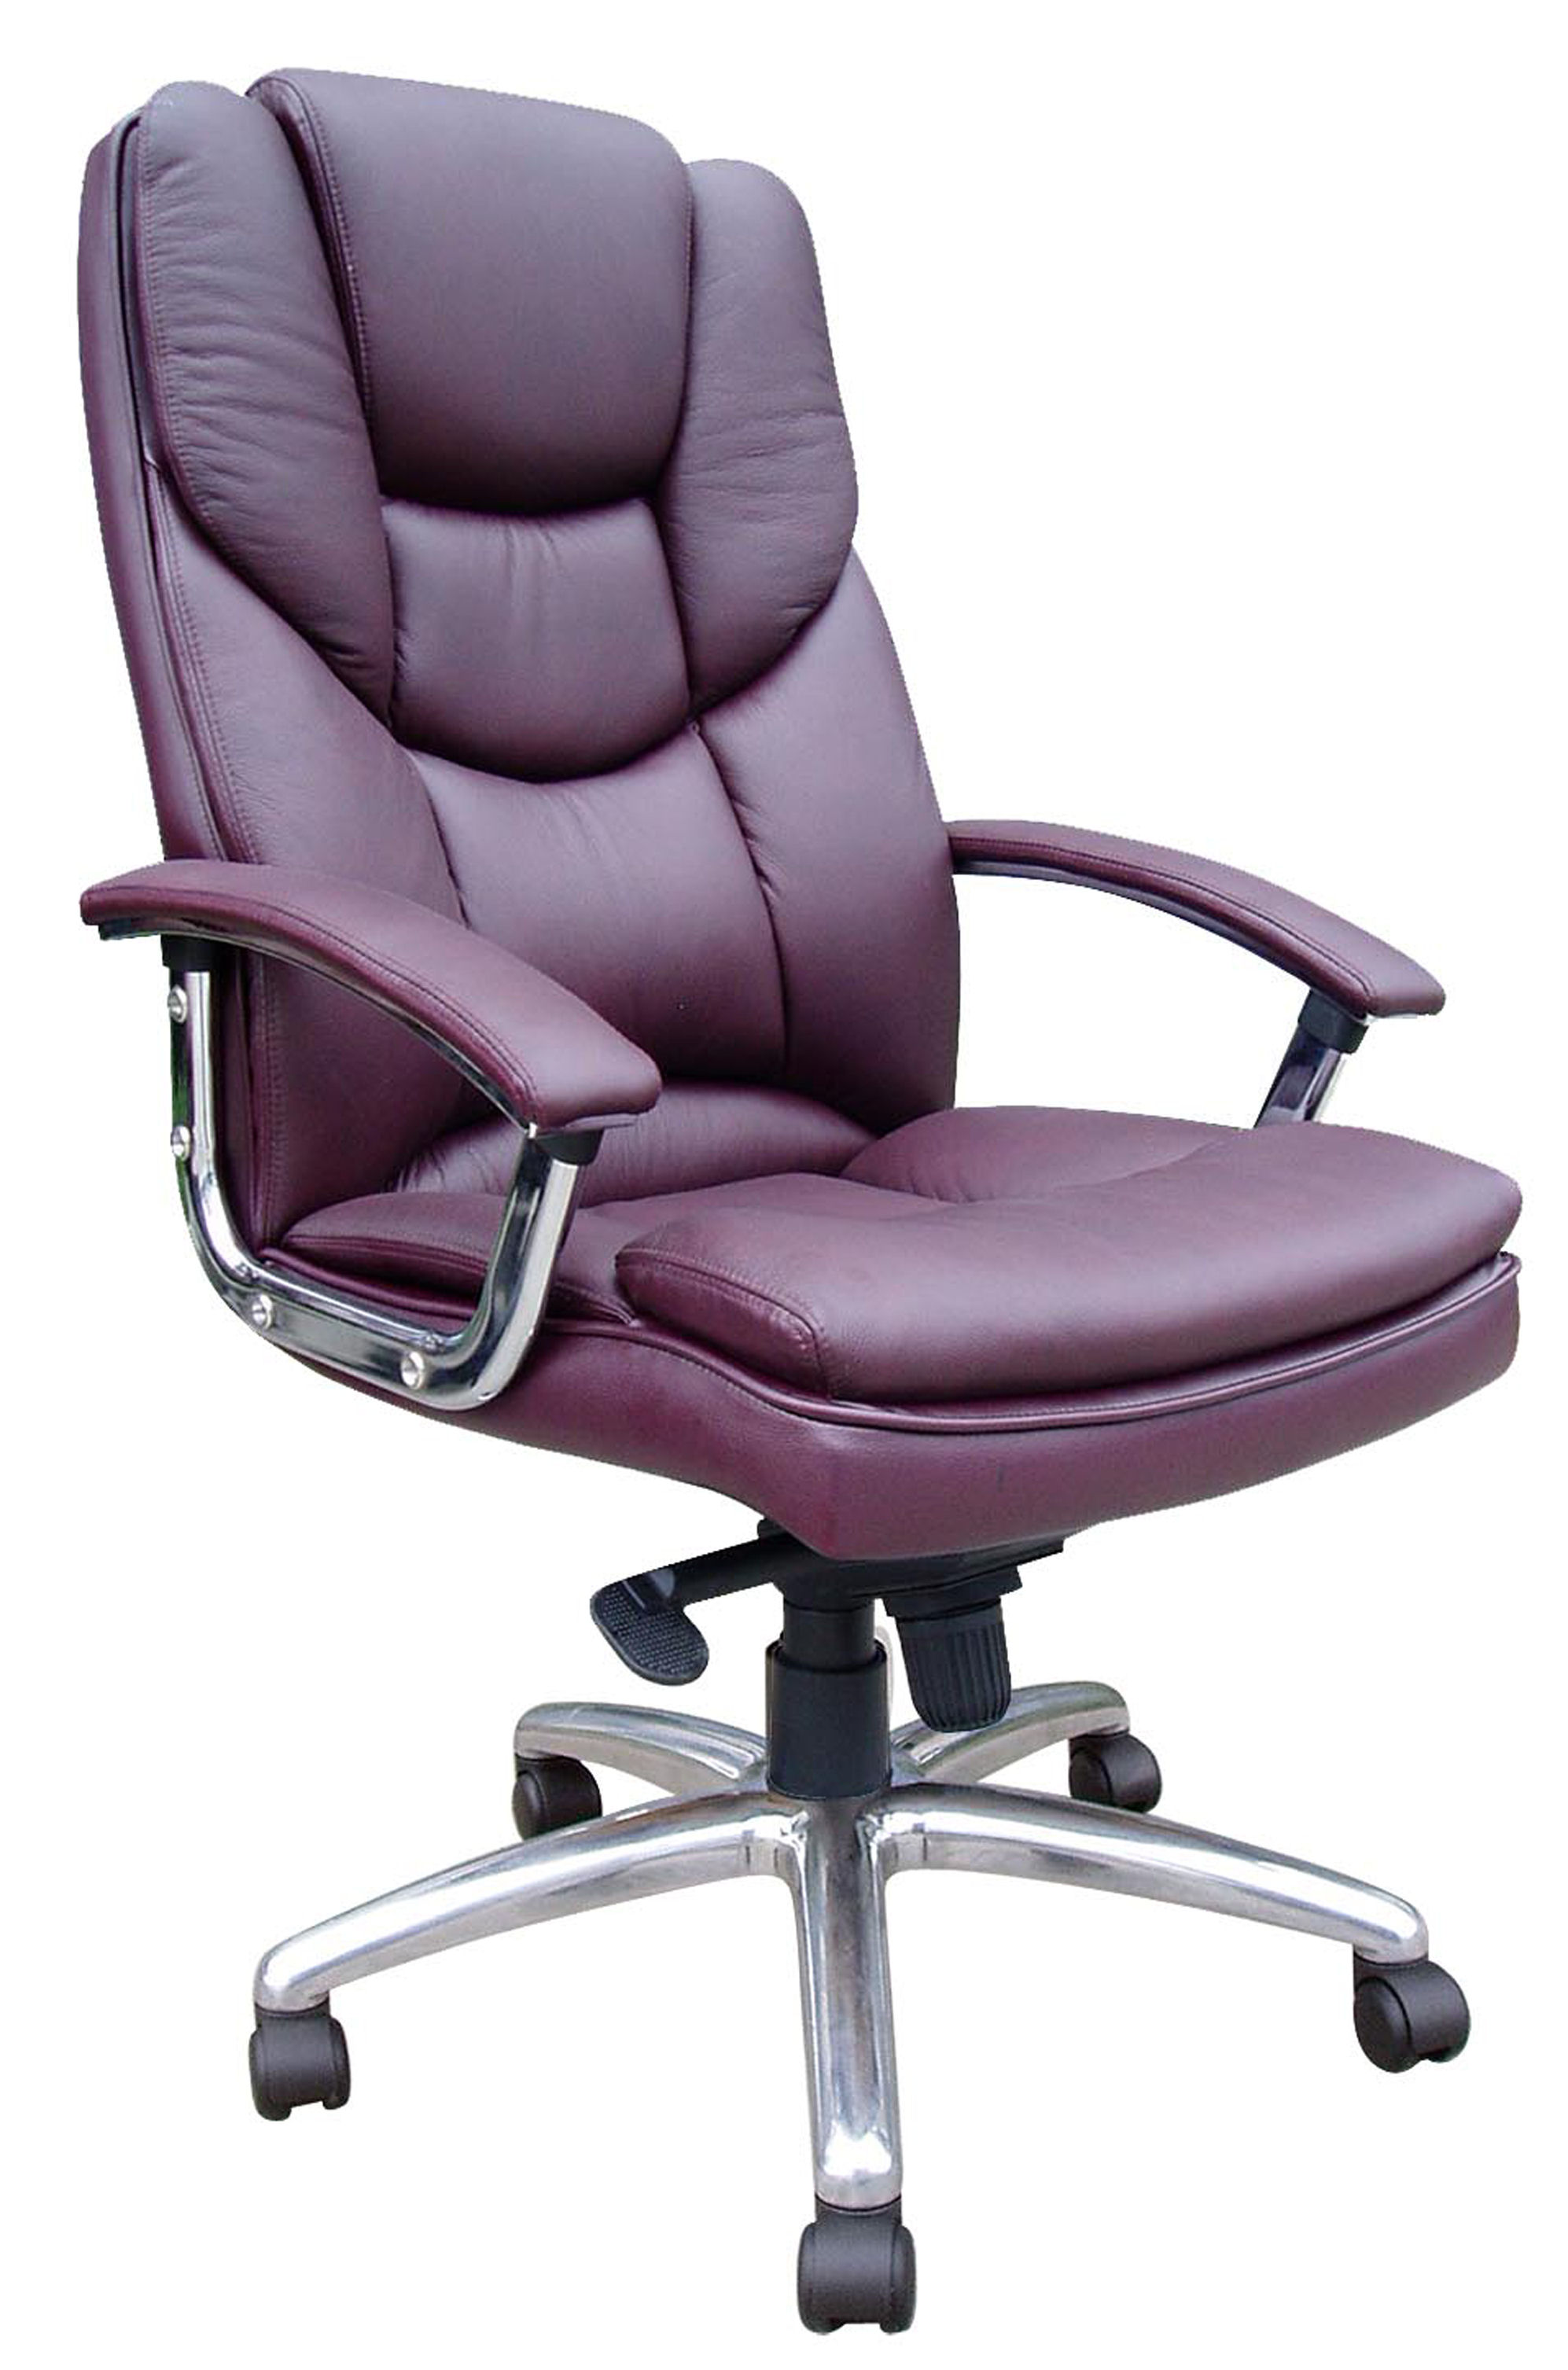 Leather Office Chairs Skyline Luxury Leather Office Chair 9410386